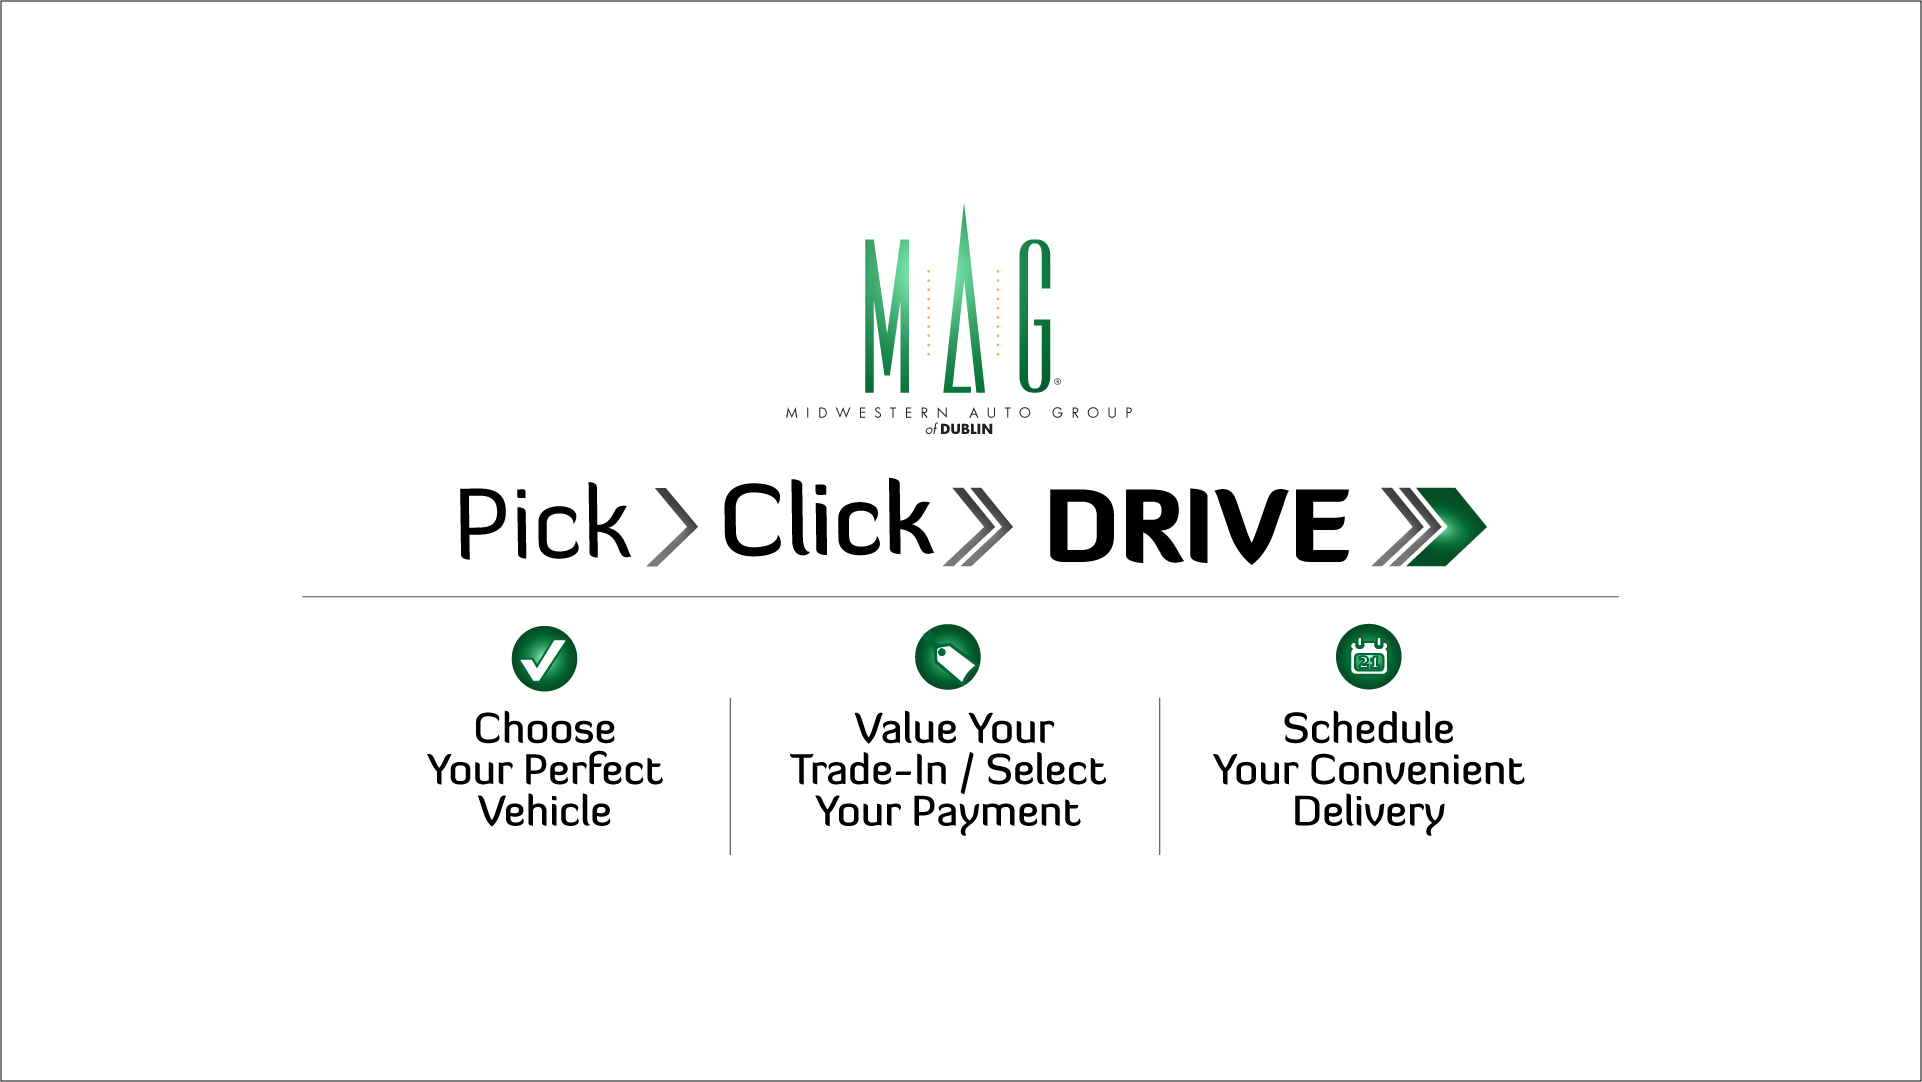 Midwestern Auto Group >> Pick Click Drive Midwestern Auto Group